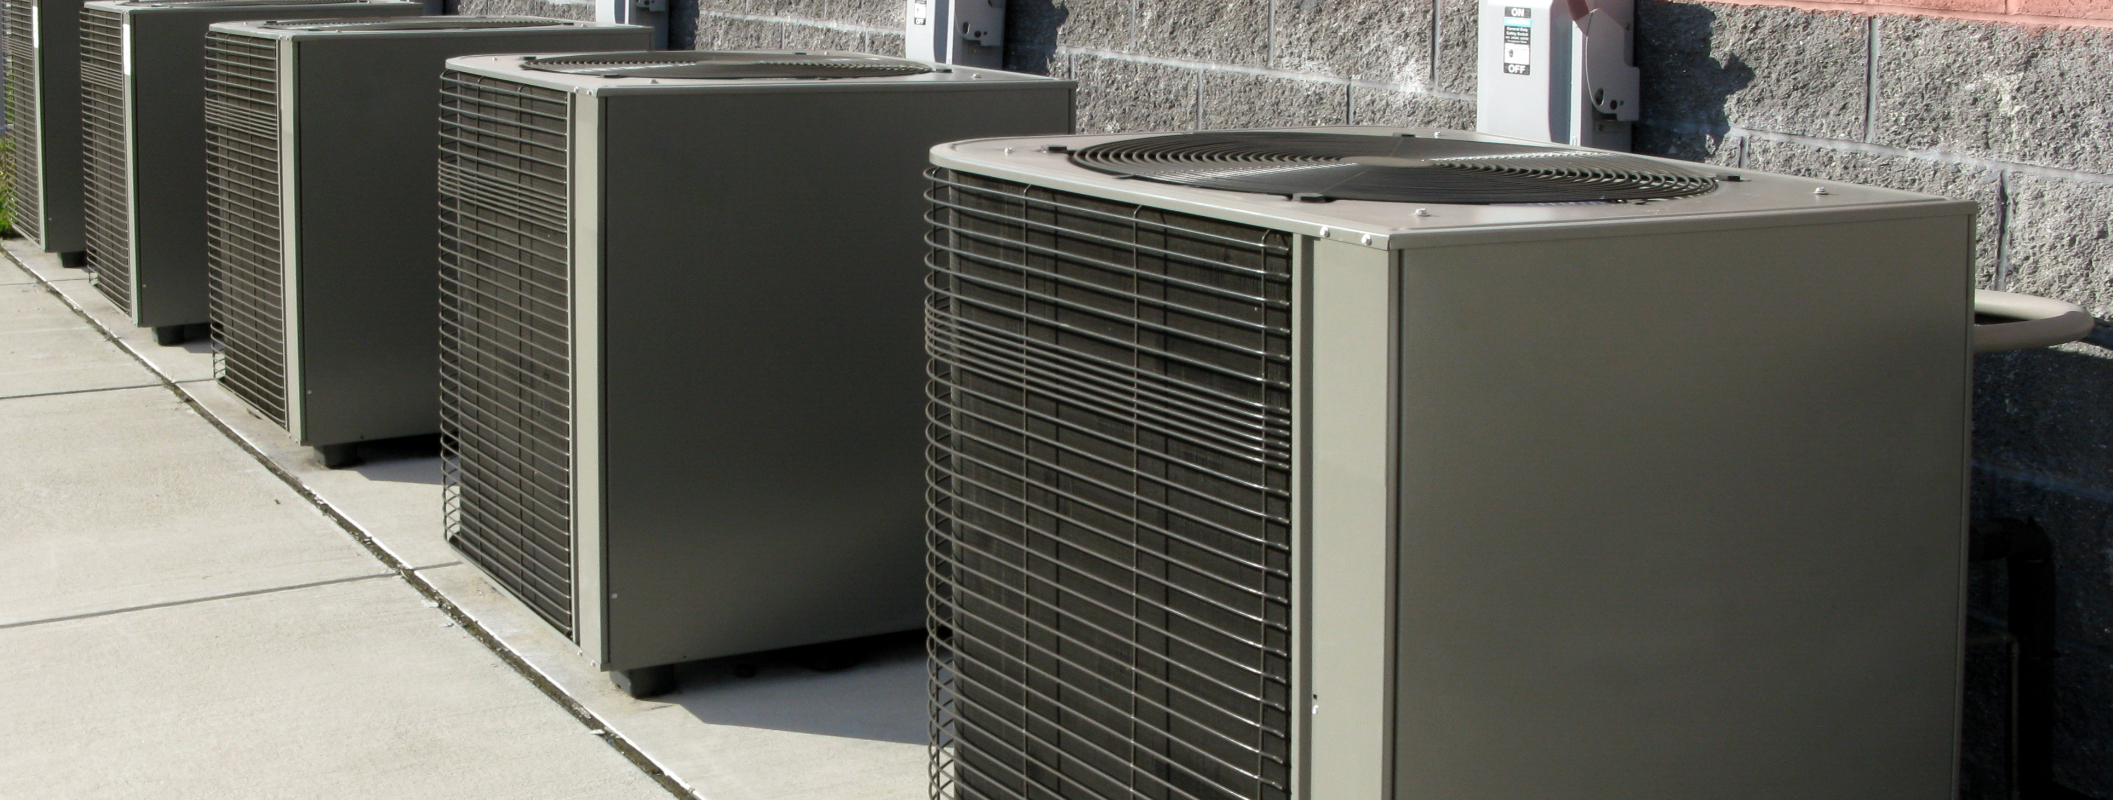 Heat Recovery & Ventilation System